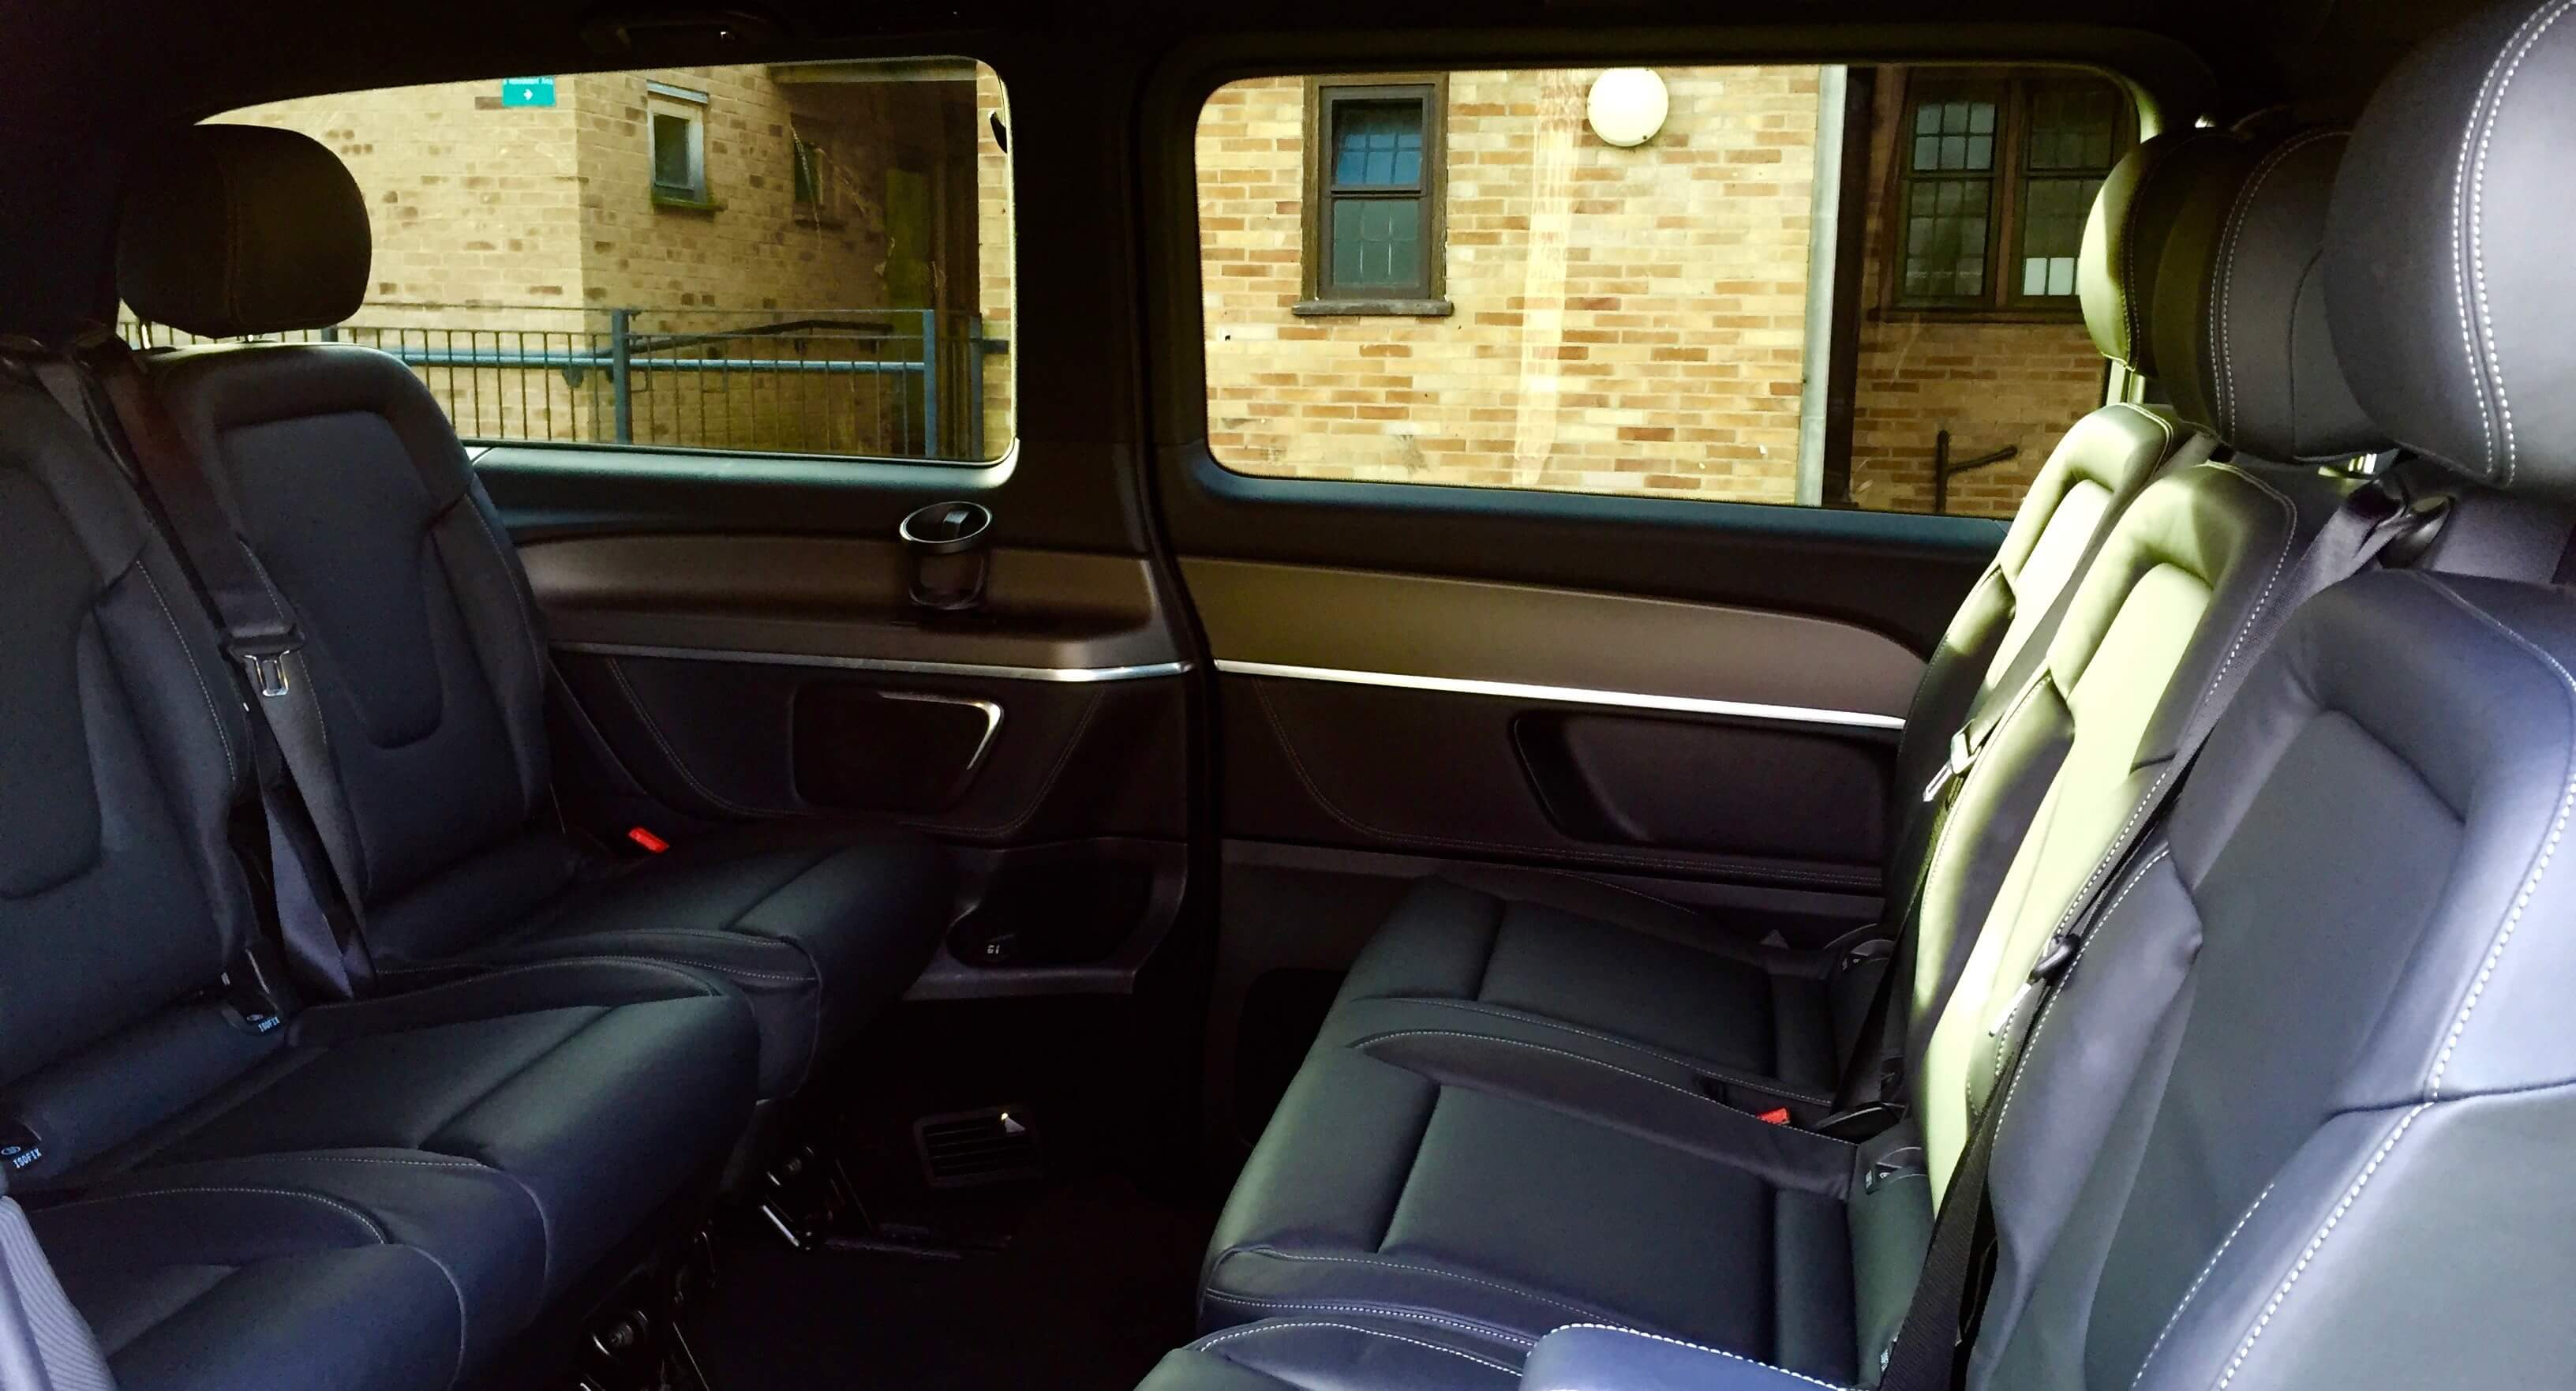 Mercedes V Class Chauffeur Services London Llc